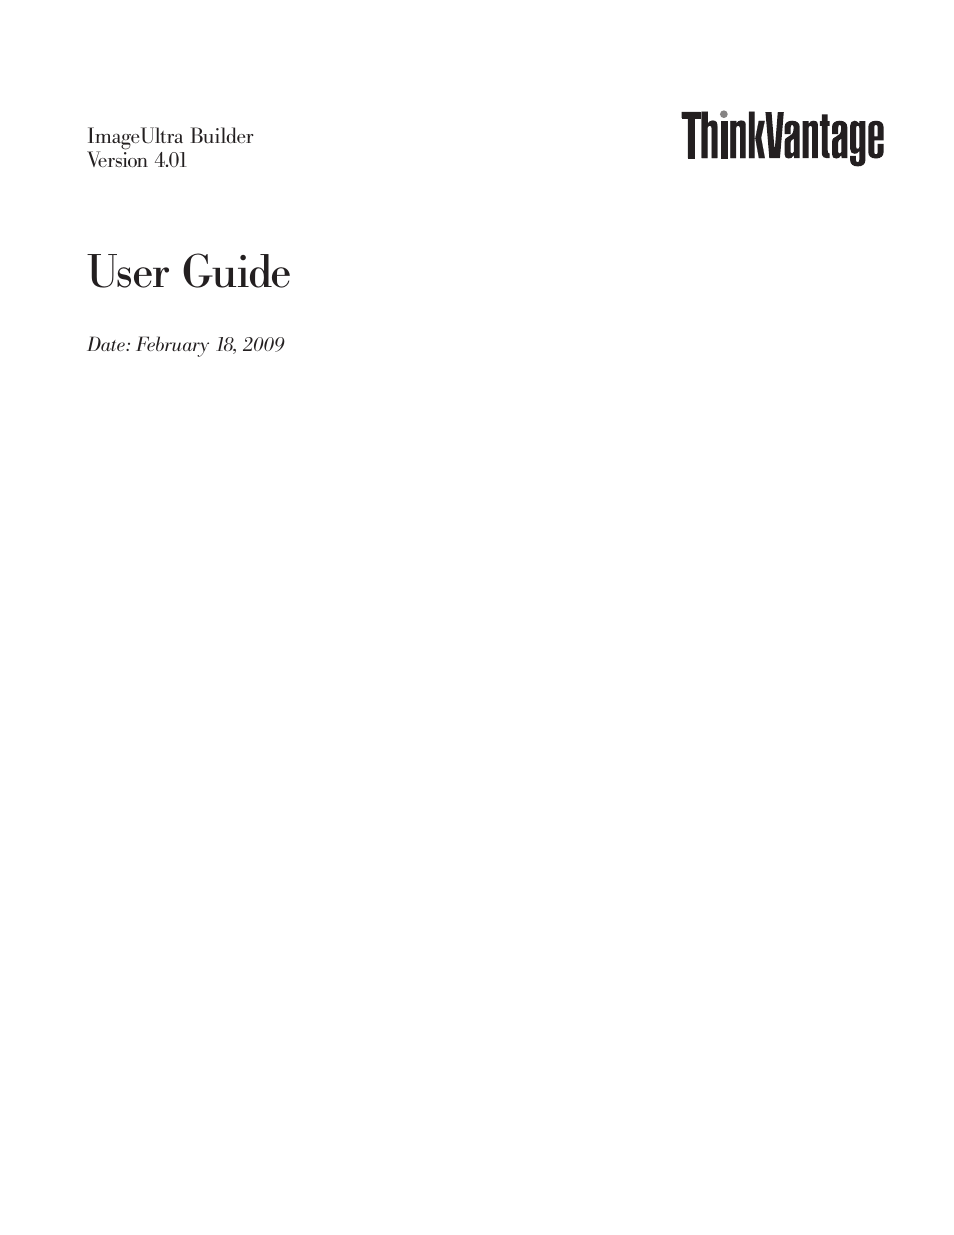 Lenovo ThinkPad R400 User Manual   220 pages   Also for: THINKPAD X60,  ThinkPad T43, ThinkPad R61e, THINKPAD T61, ThinkPad X301, ThinkPad R50e,  ThinkPad ...